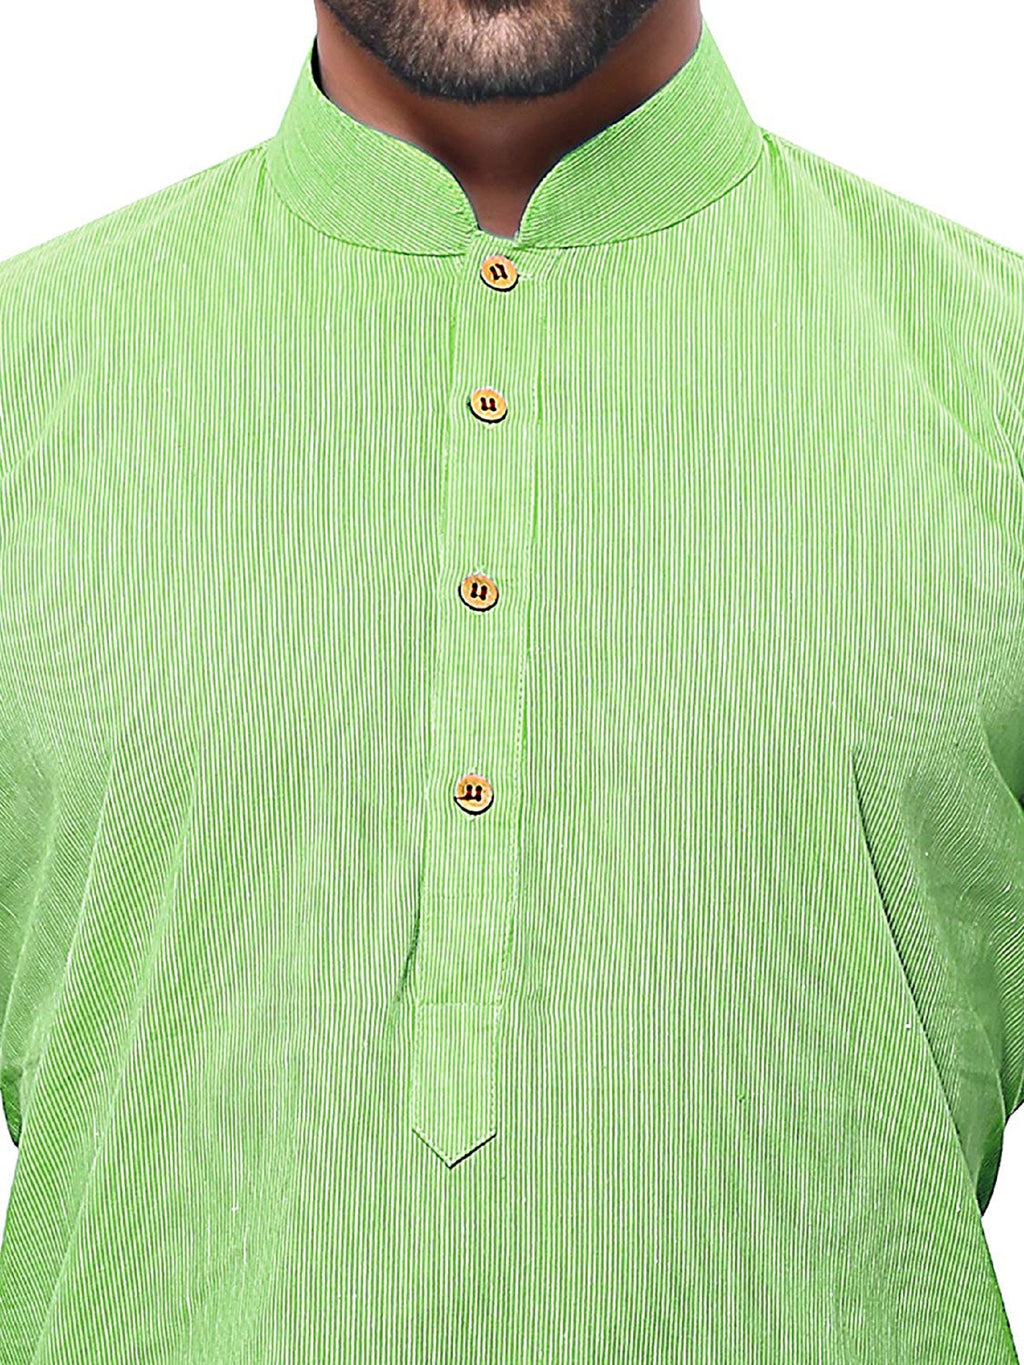 Men's Handloom Green Kurta Pyjama